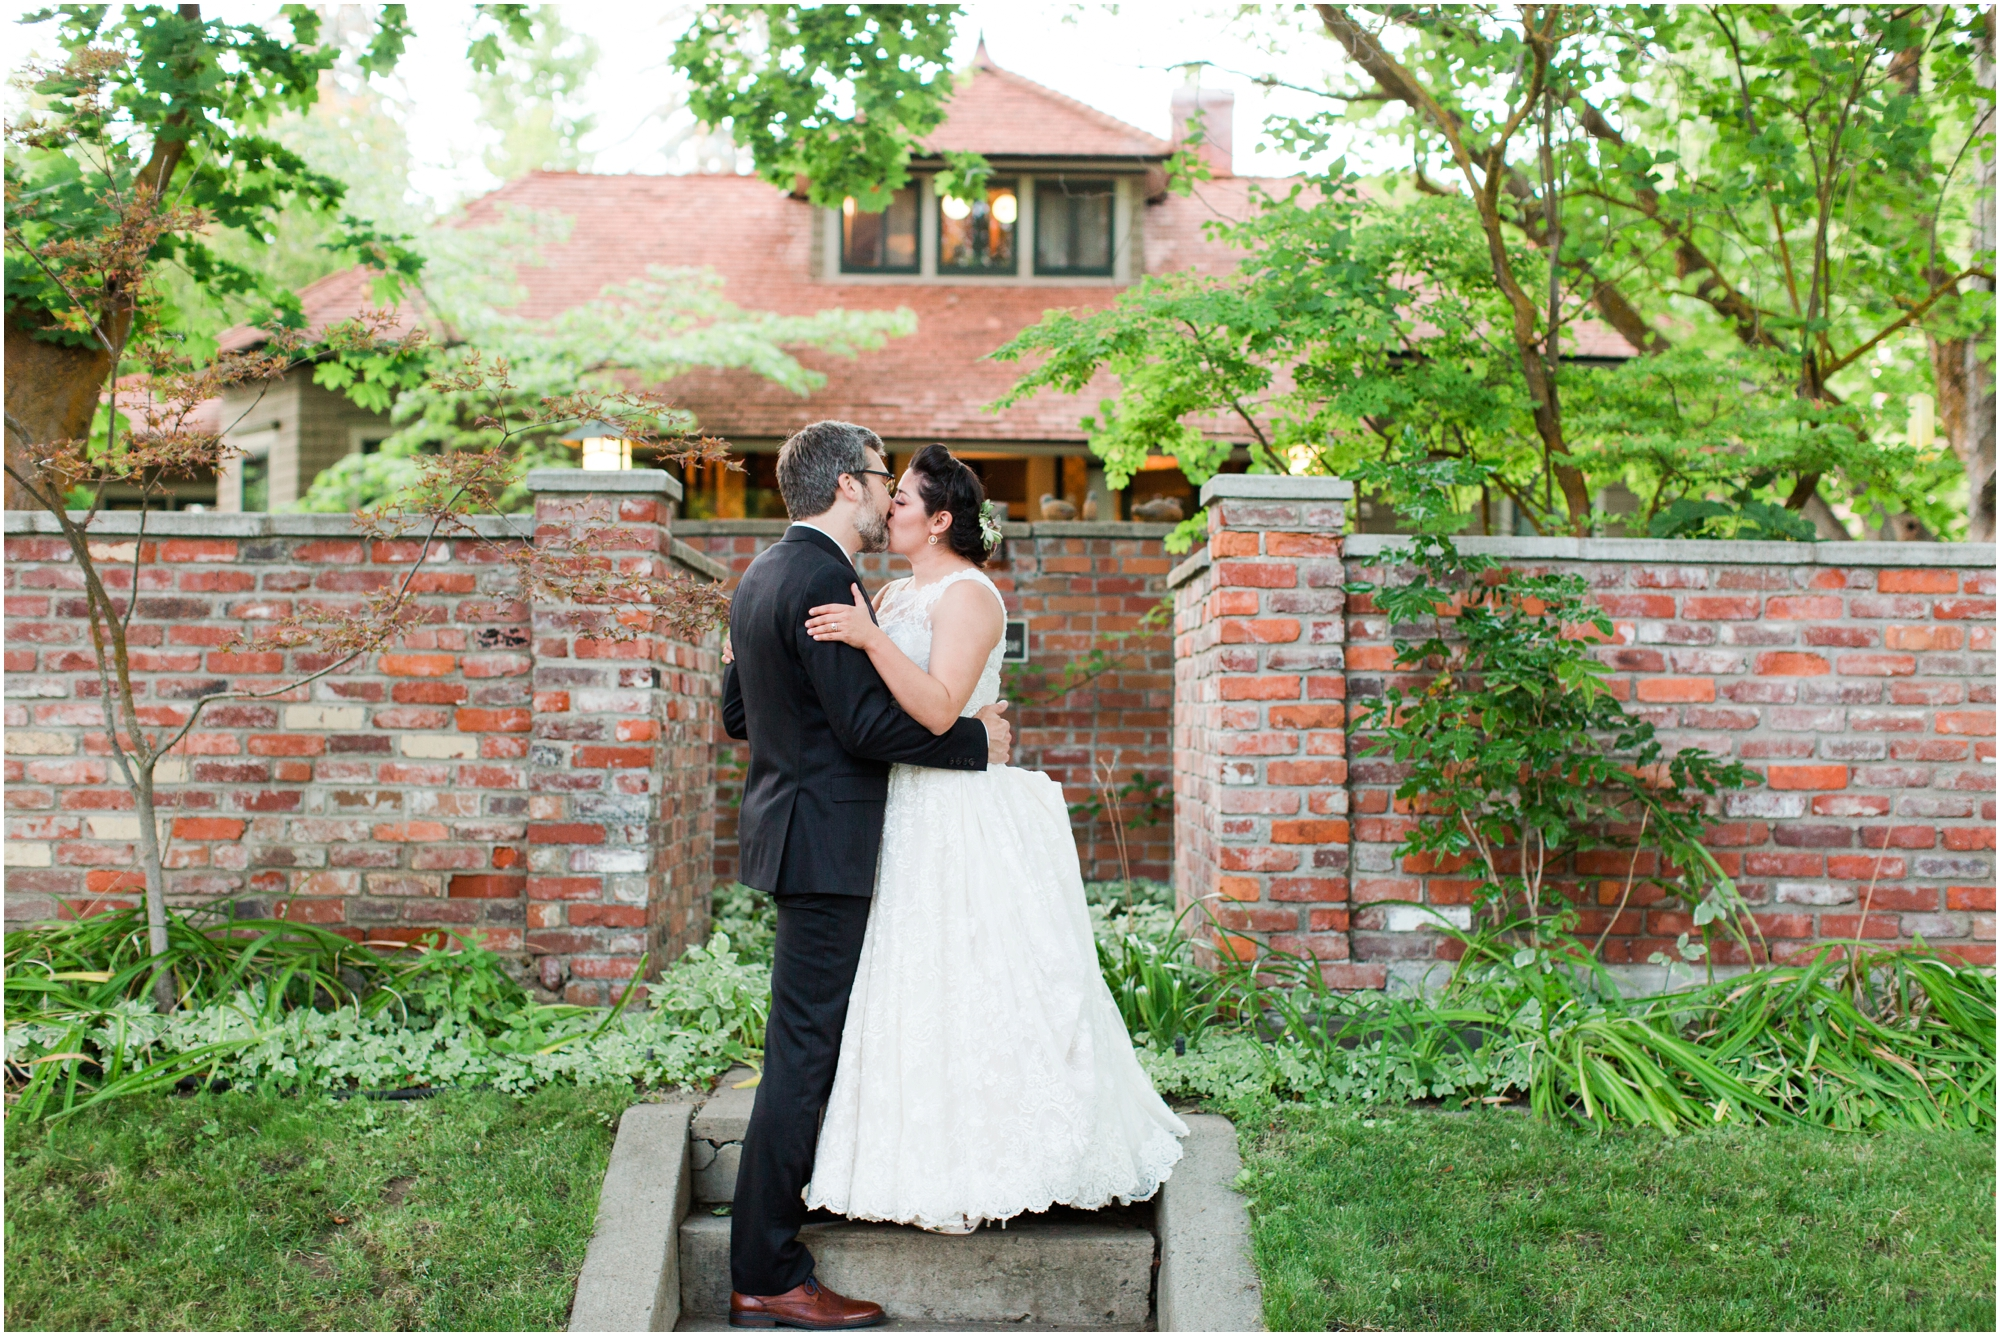 Garden wedding in Ellensburg, WA. Photos by Briana Calderon Photography based in the greater Seattle-Tacoma Area._1360.jpg